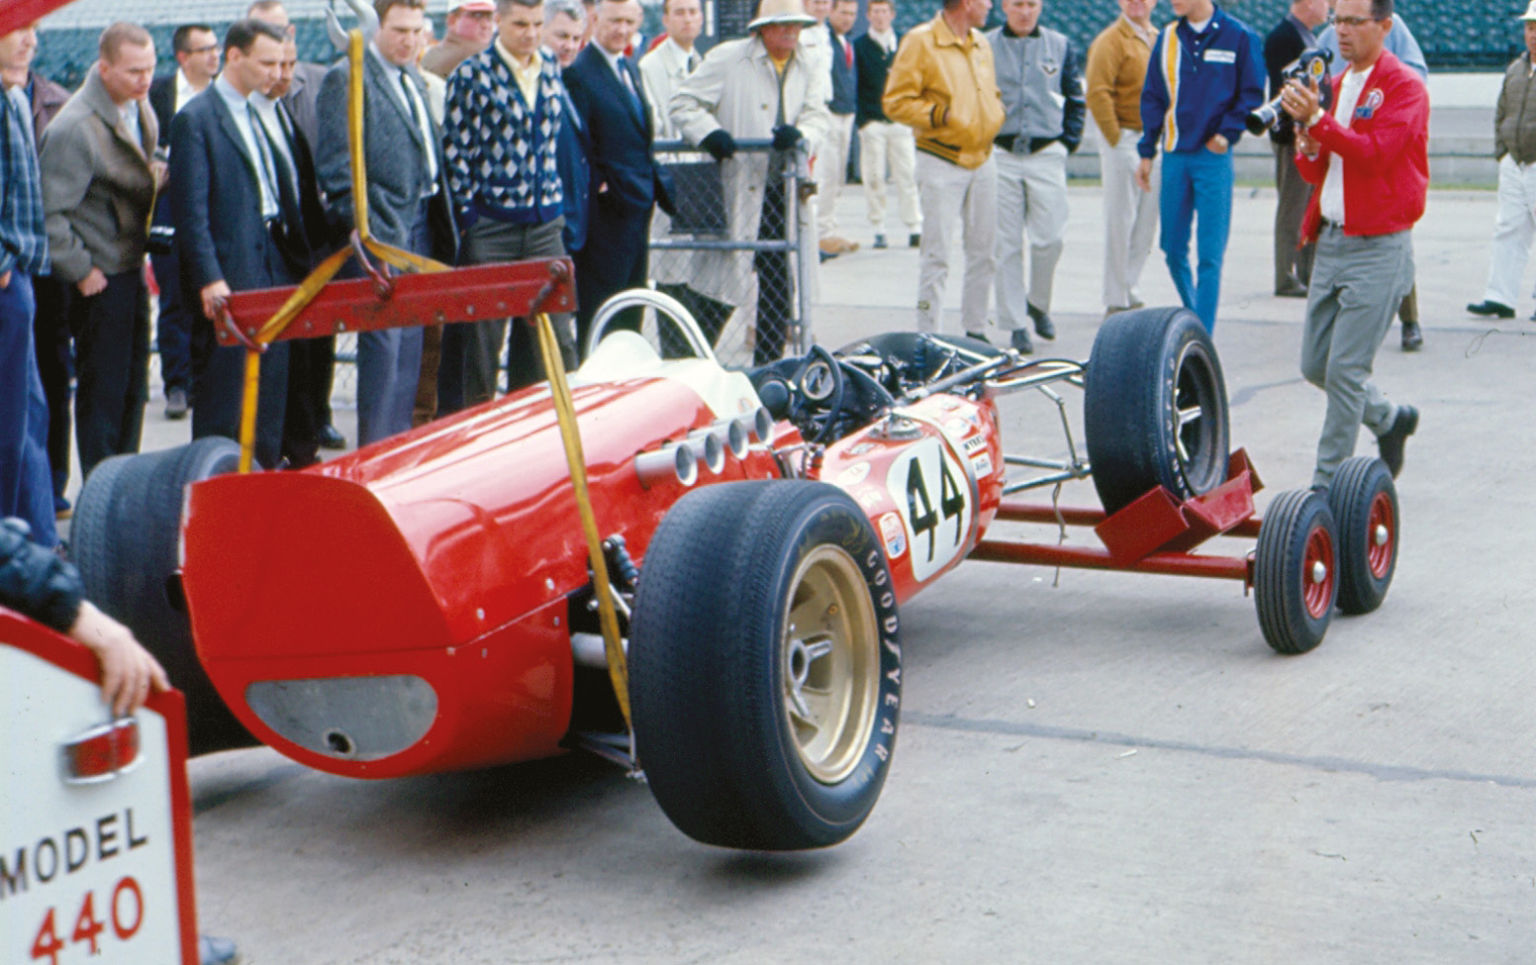 Chuck Arnold's Vollstedt-Offy is recovered after he crashed before qualifying for Indy in '67